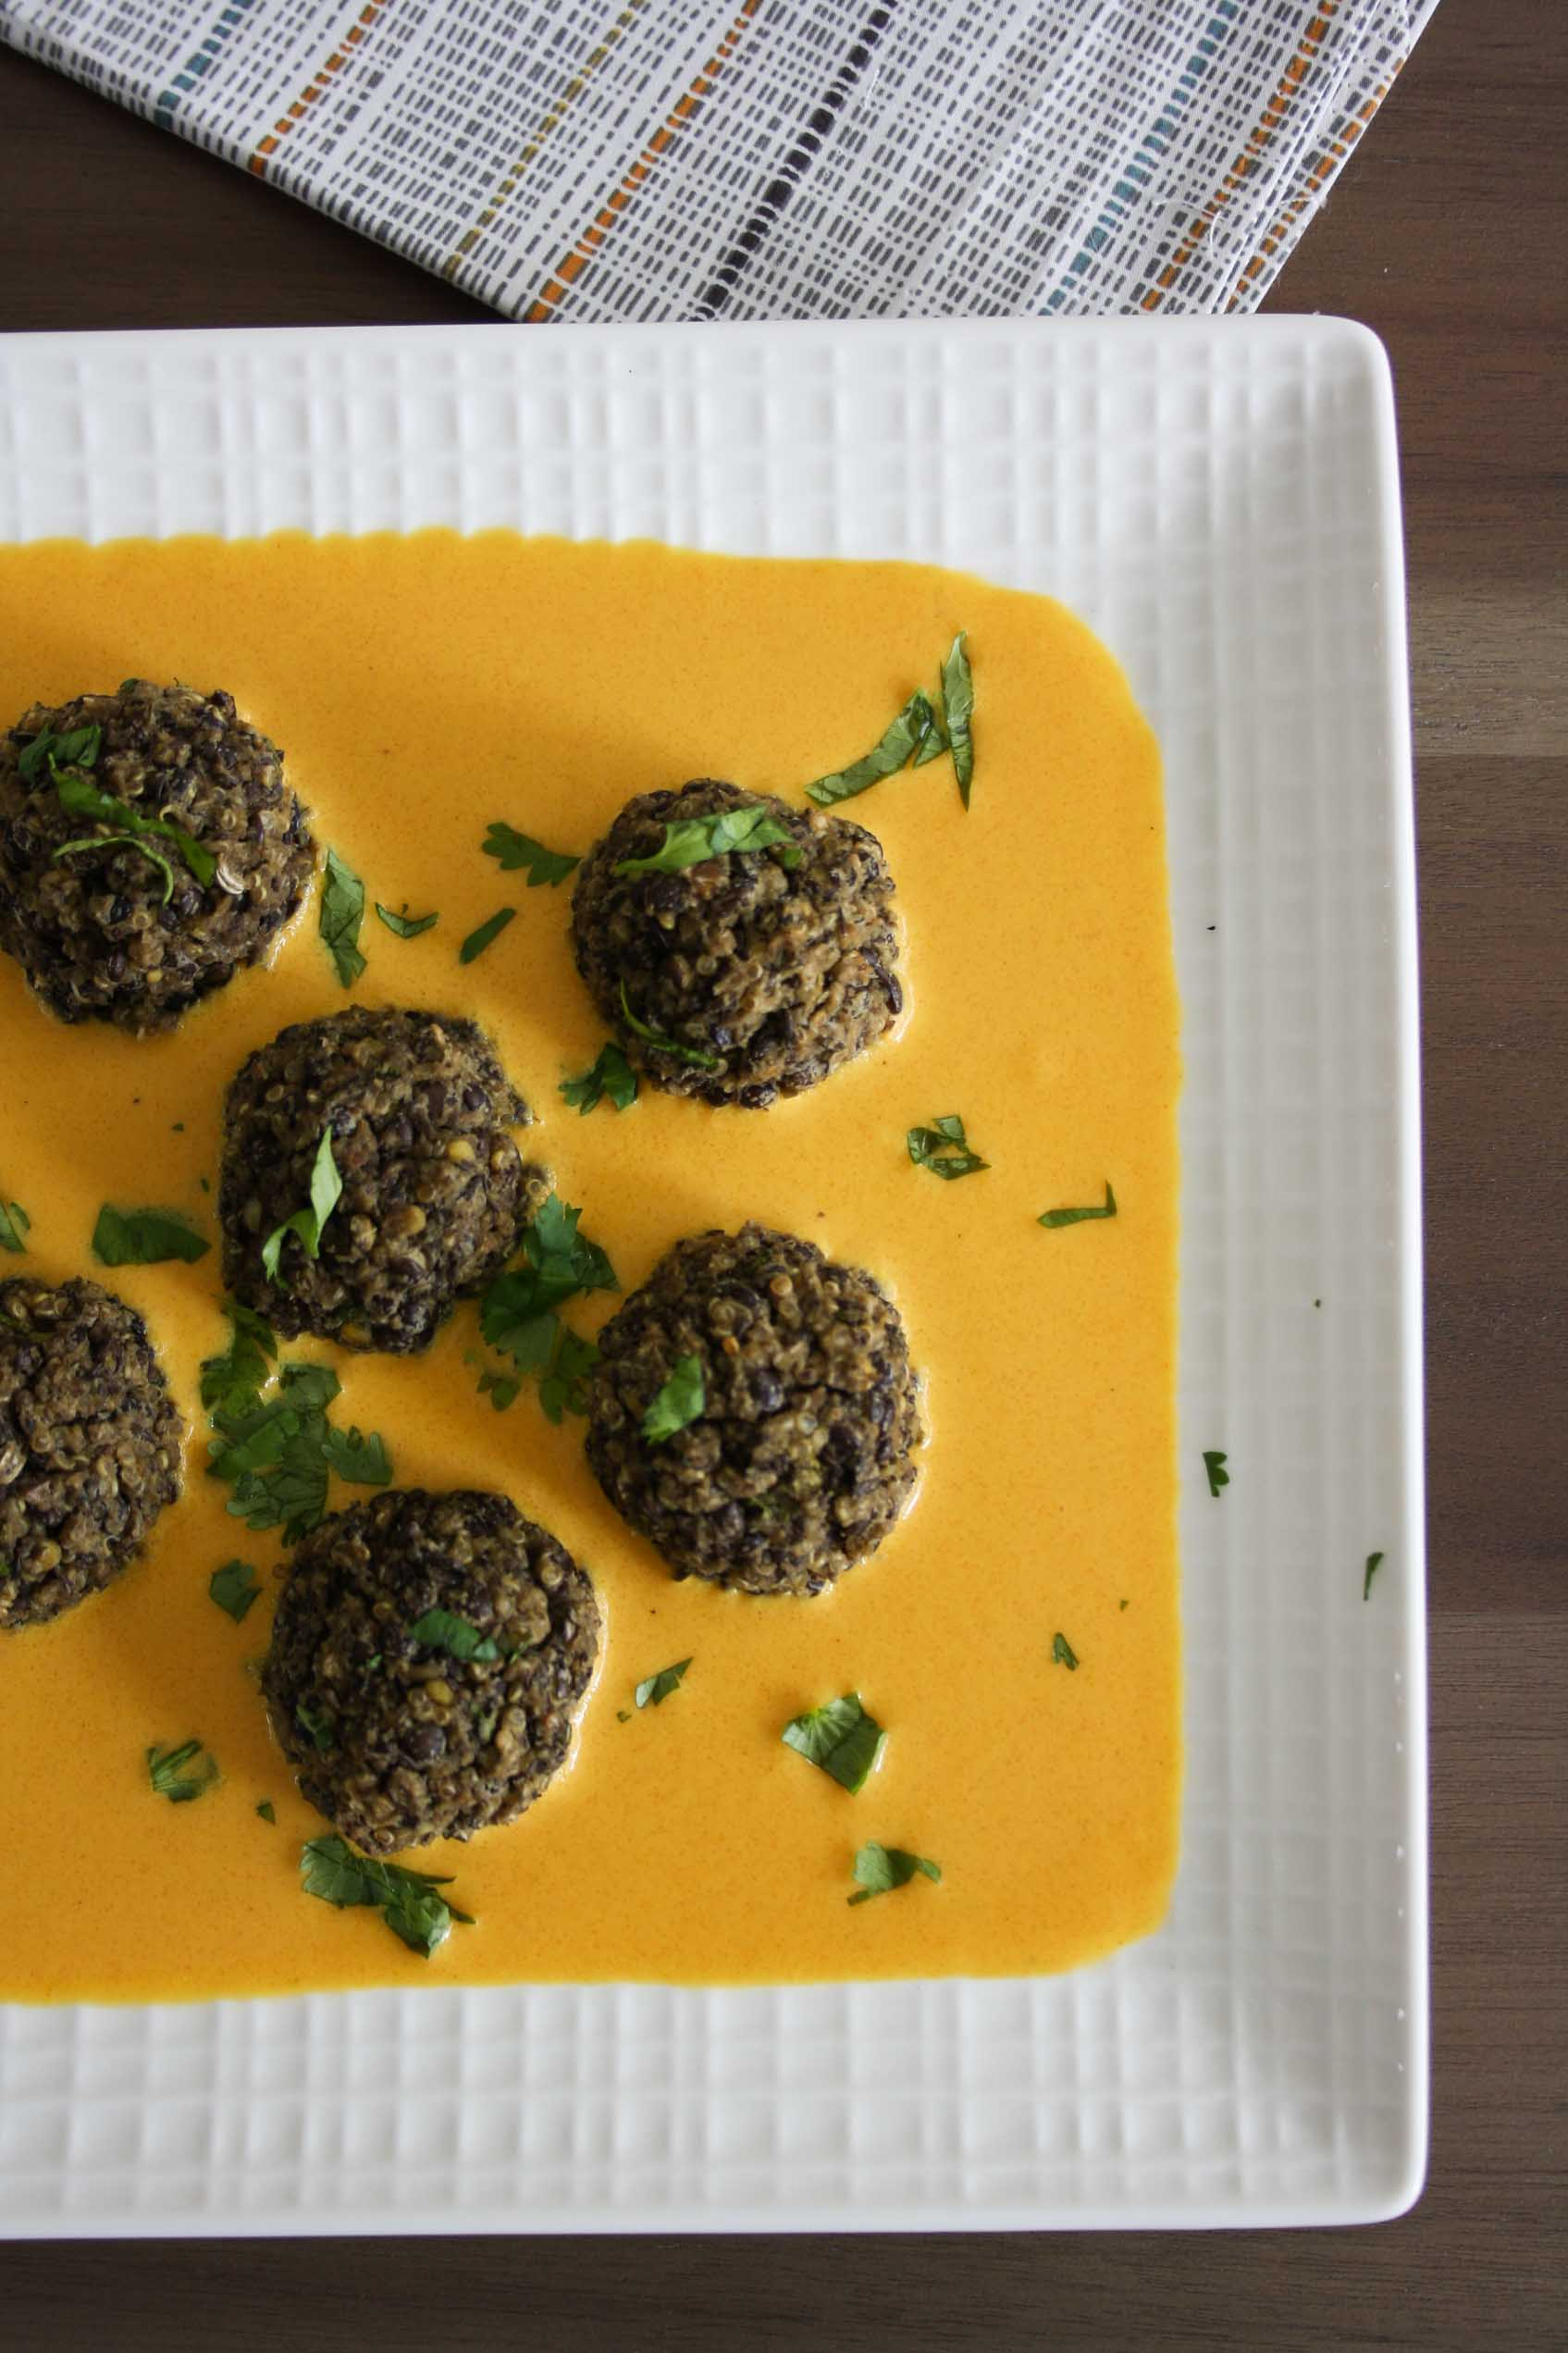 lentil and quinoa meatballs on top of curry sauce in a square white plate